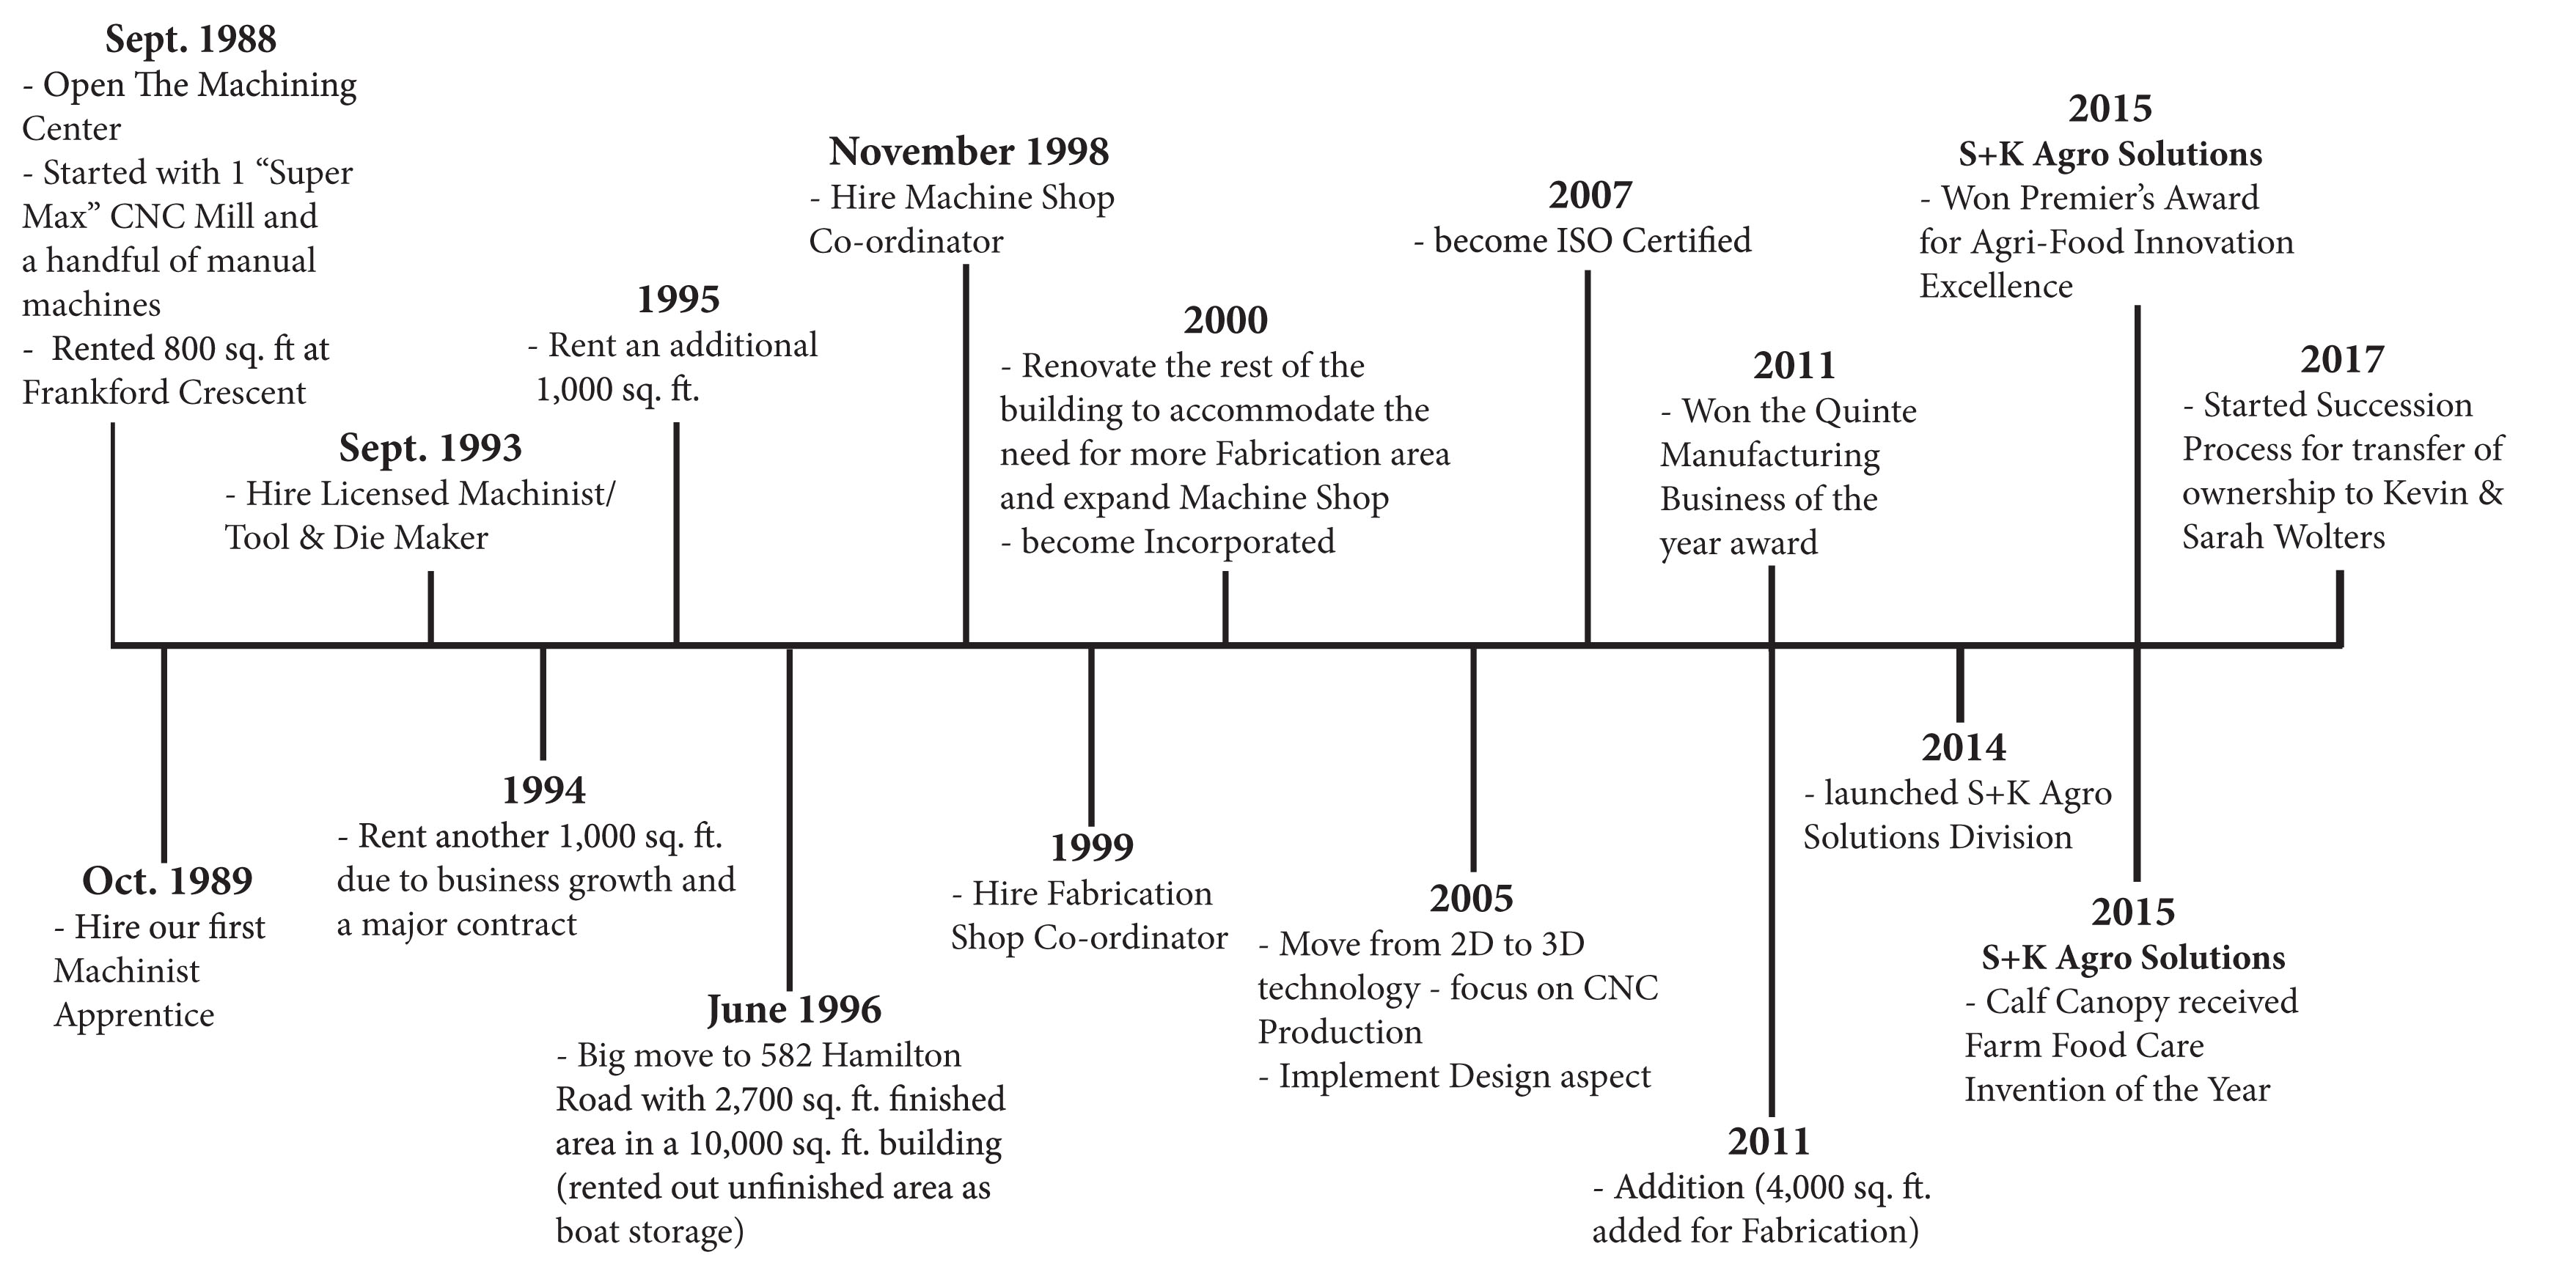 The Machining Center Timeline